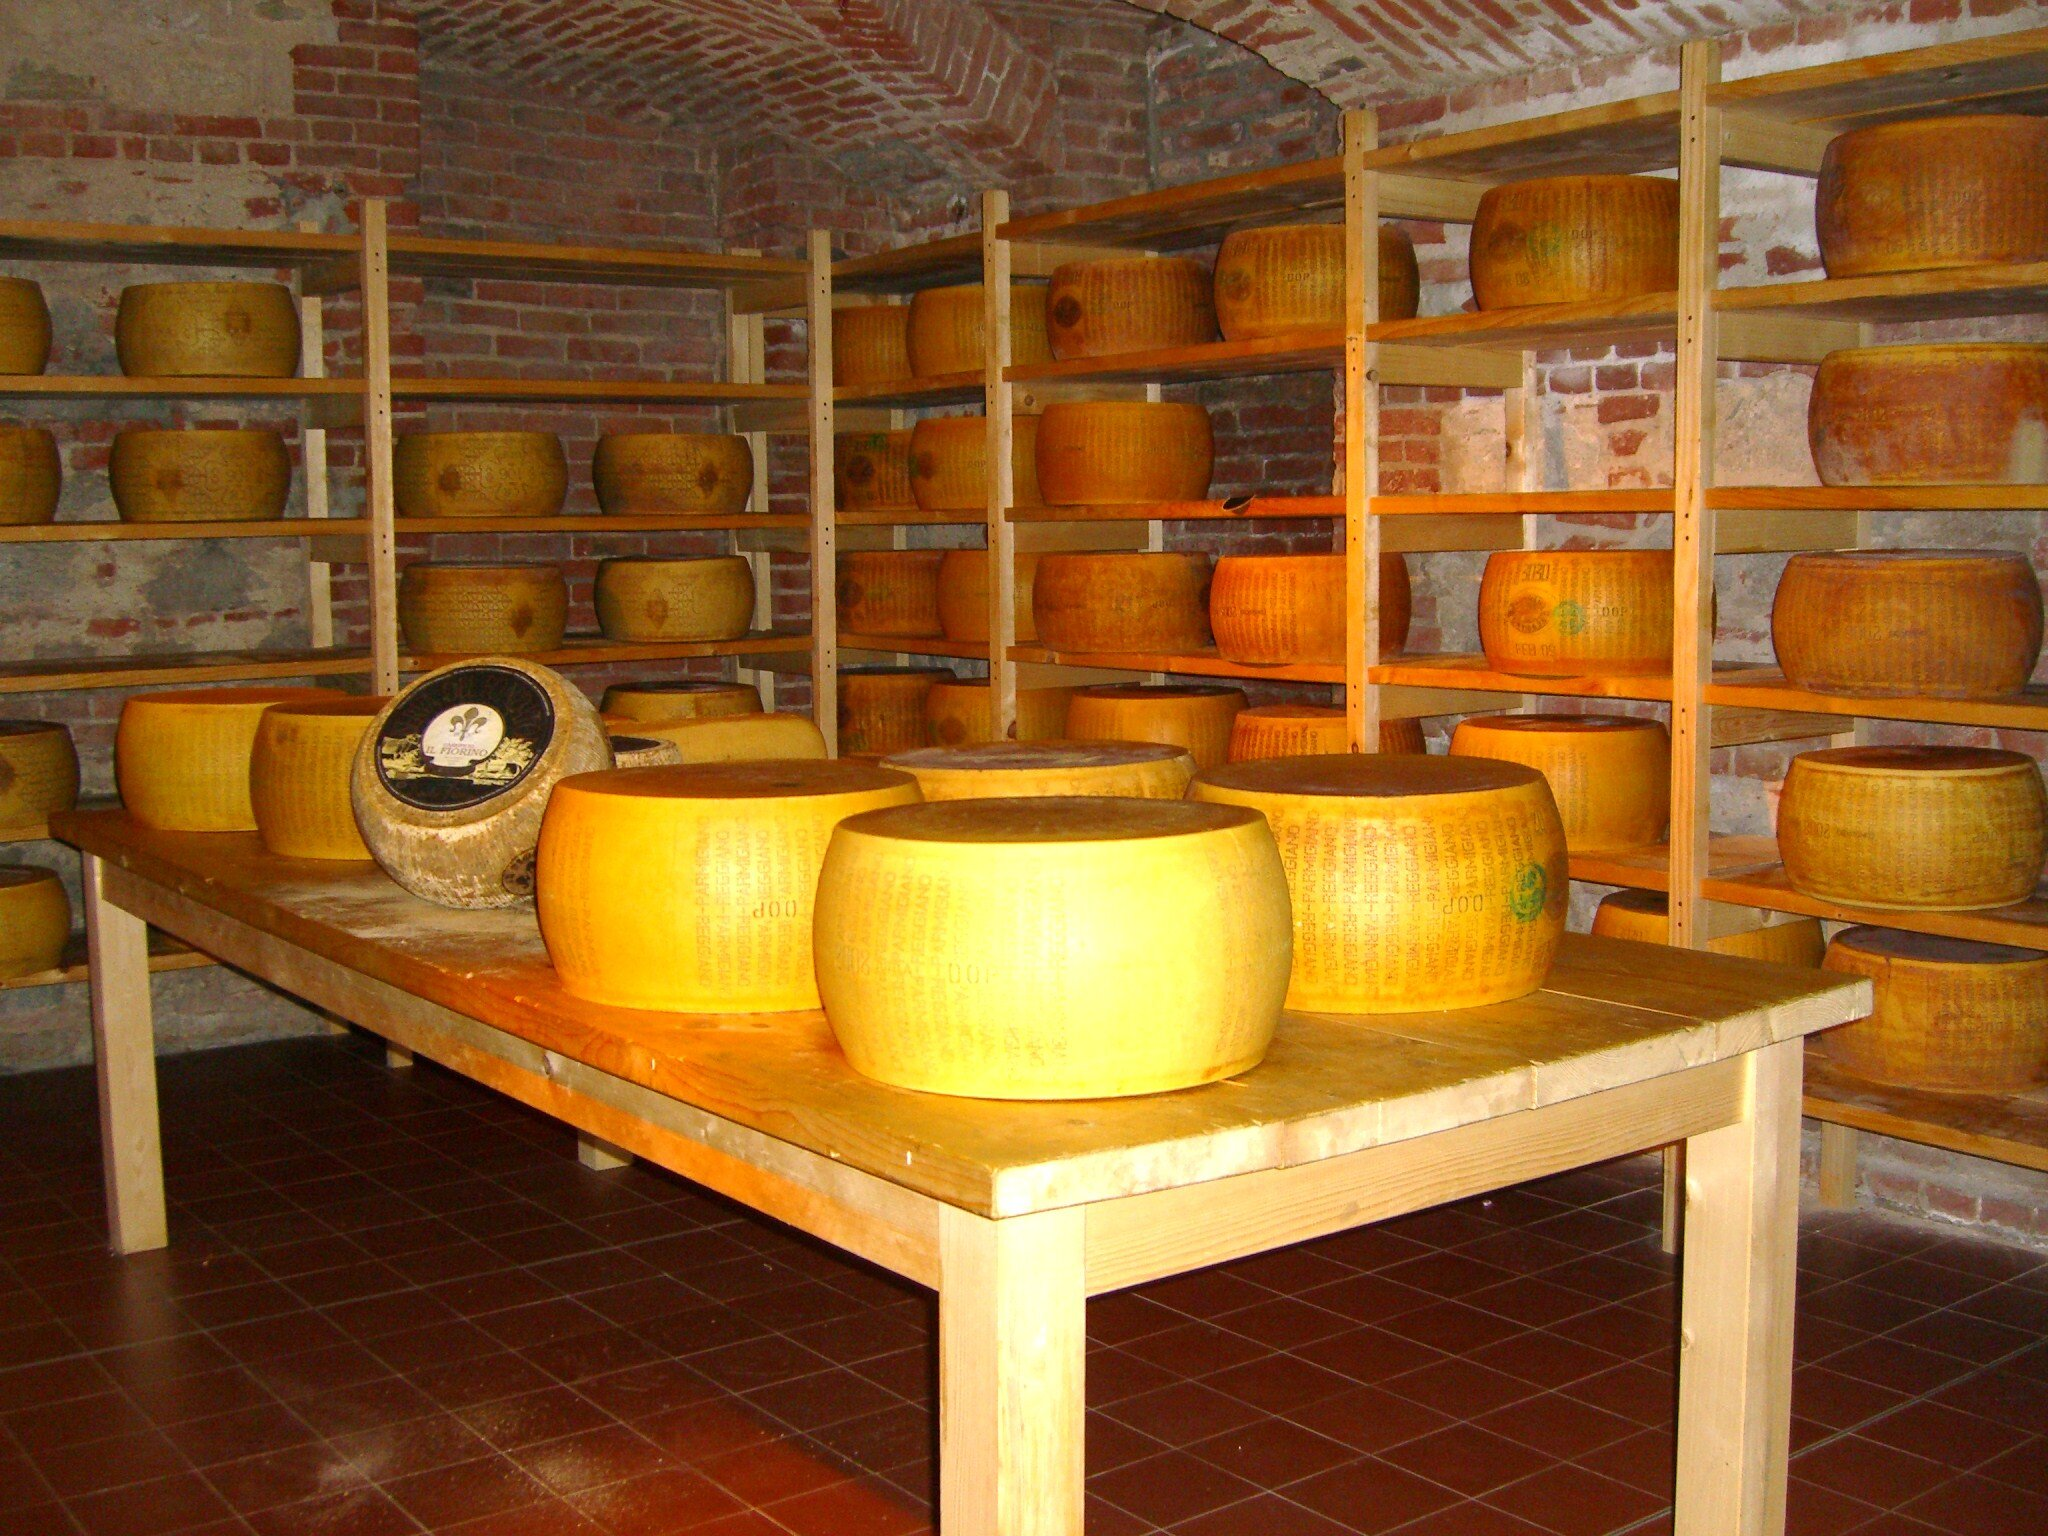 Wheels of Parmigiano Reggiano, one of the most famous food products from Italy.